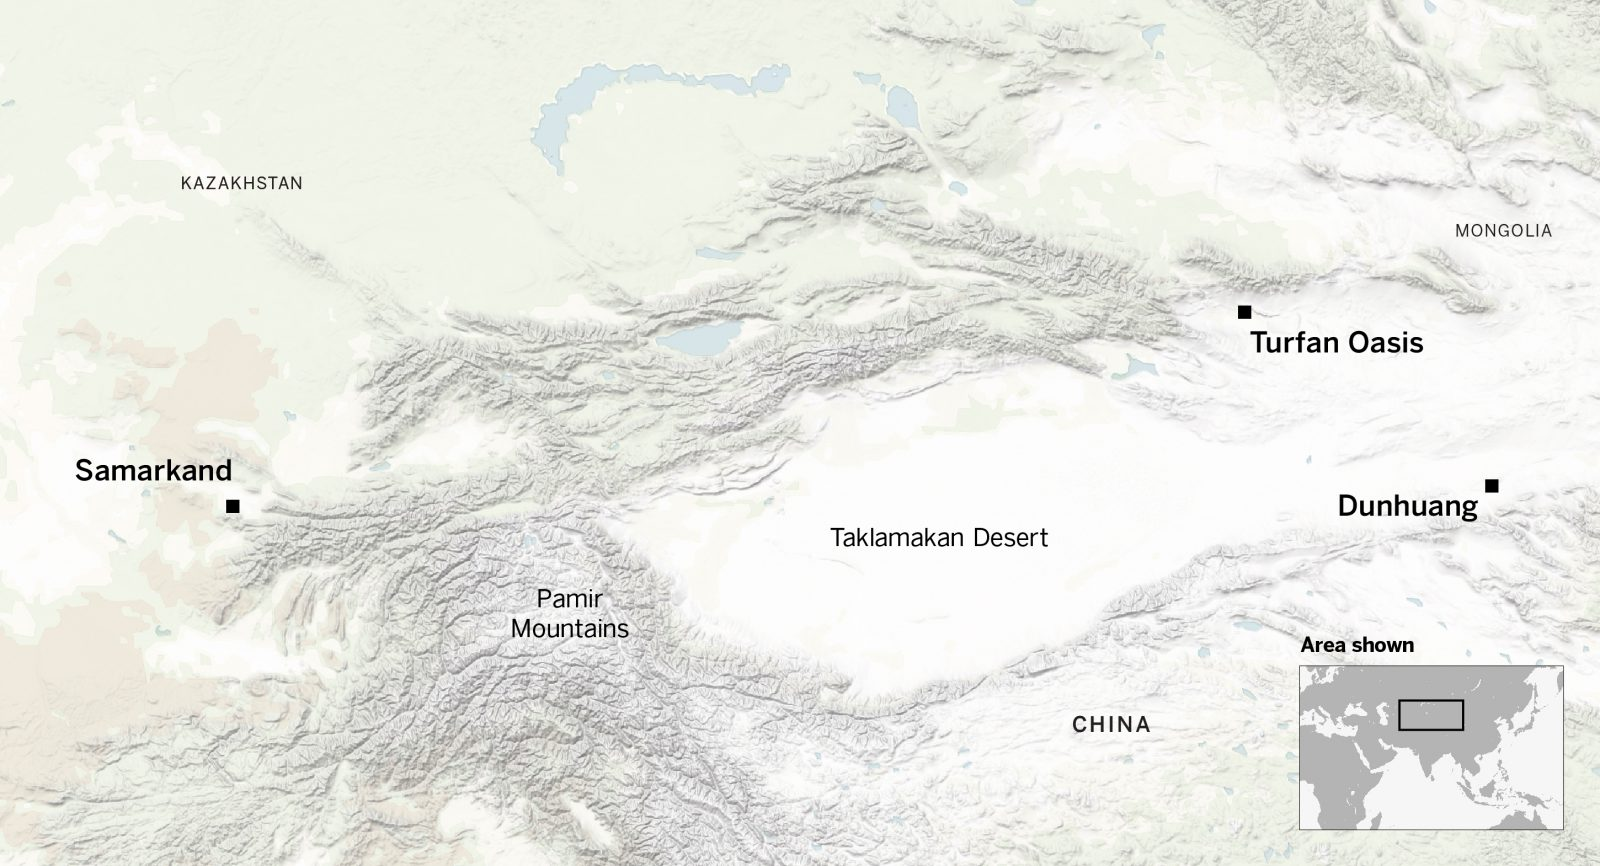 Tufan Oasis and Dunhuang are east of Samarkand